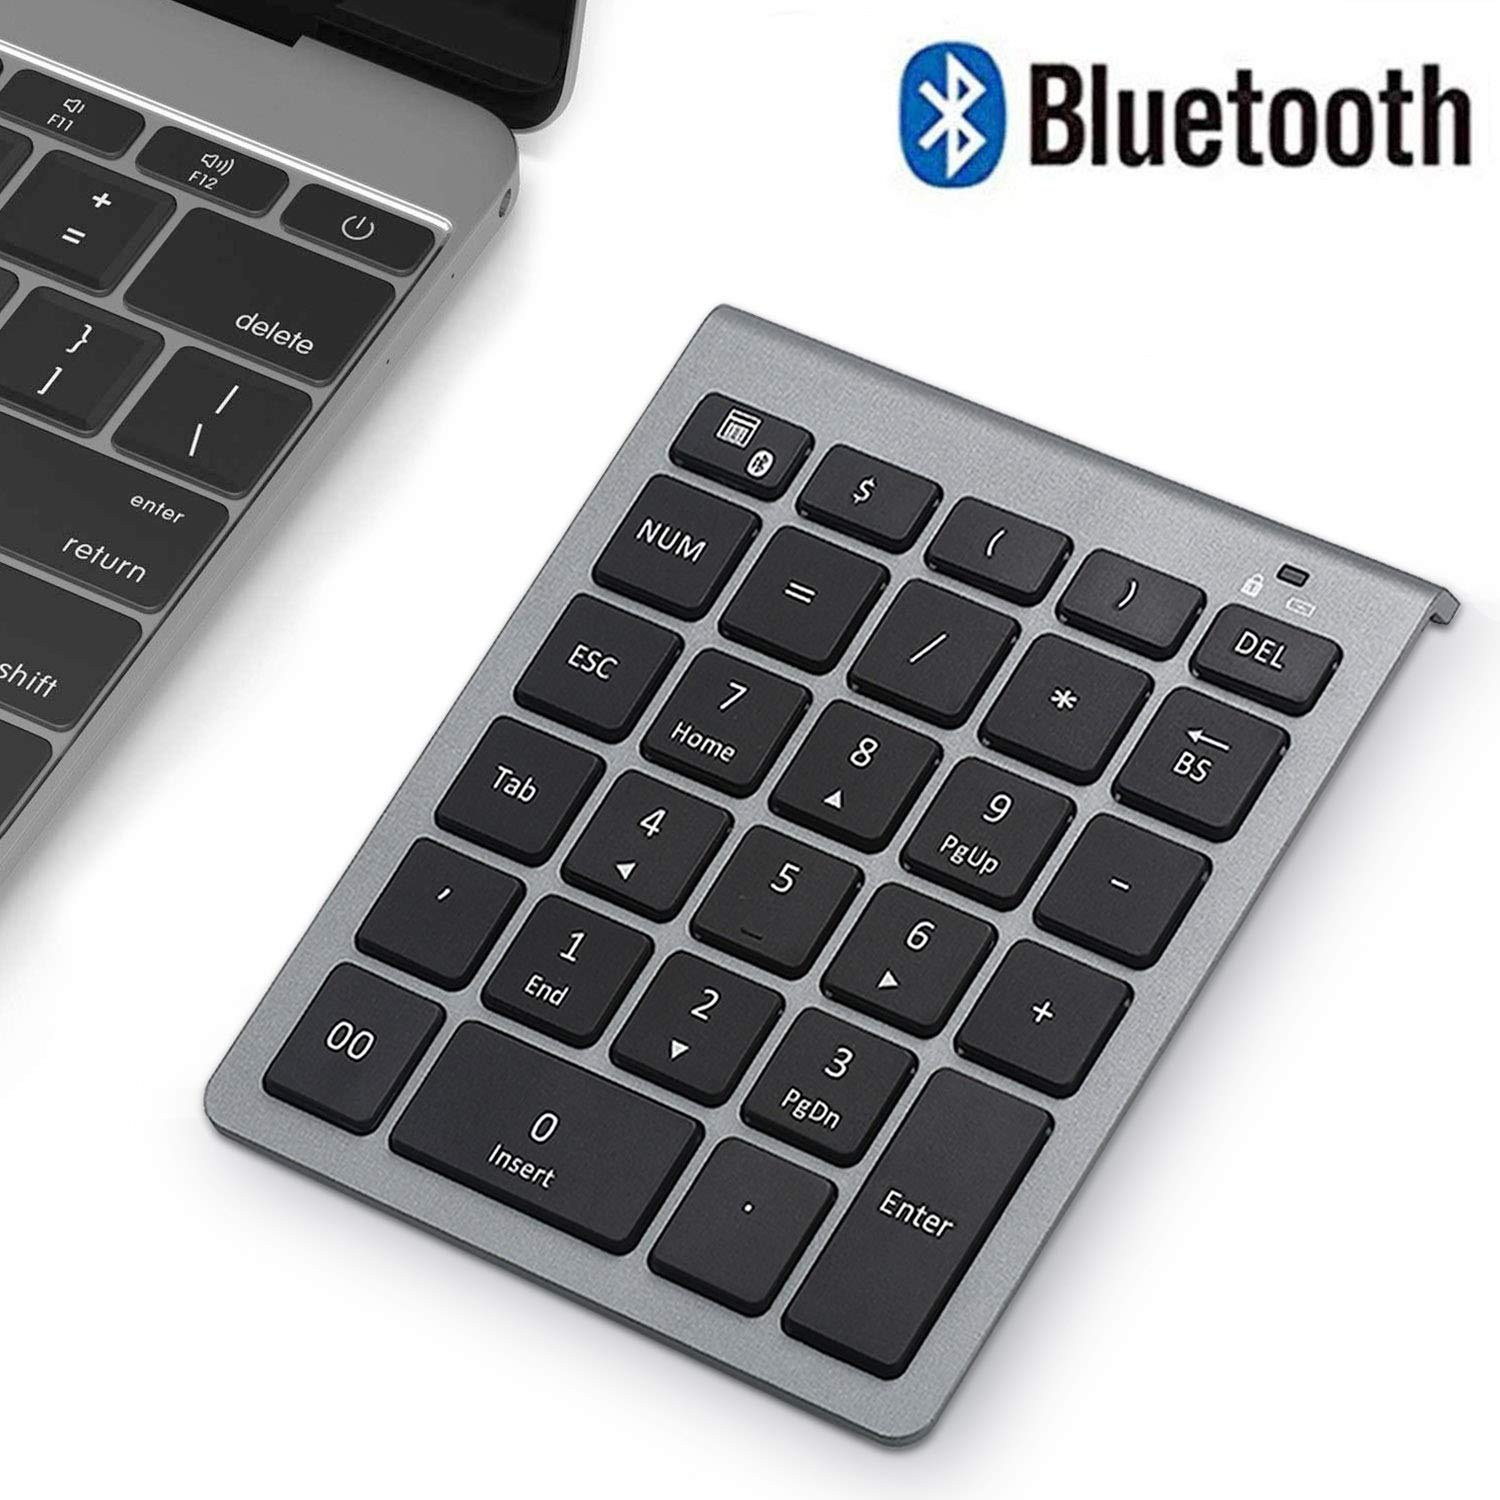 Bluetooth Numeric Keypad, Wireless Number Pad, Acedada Slim Portable 28-Keys : Financial Accounting Data Entry External Numpad 10 Key for Laptop, Tablets, Surface Pro, Windows, Android, etc - Grey by Acedada